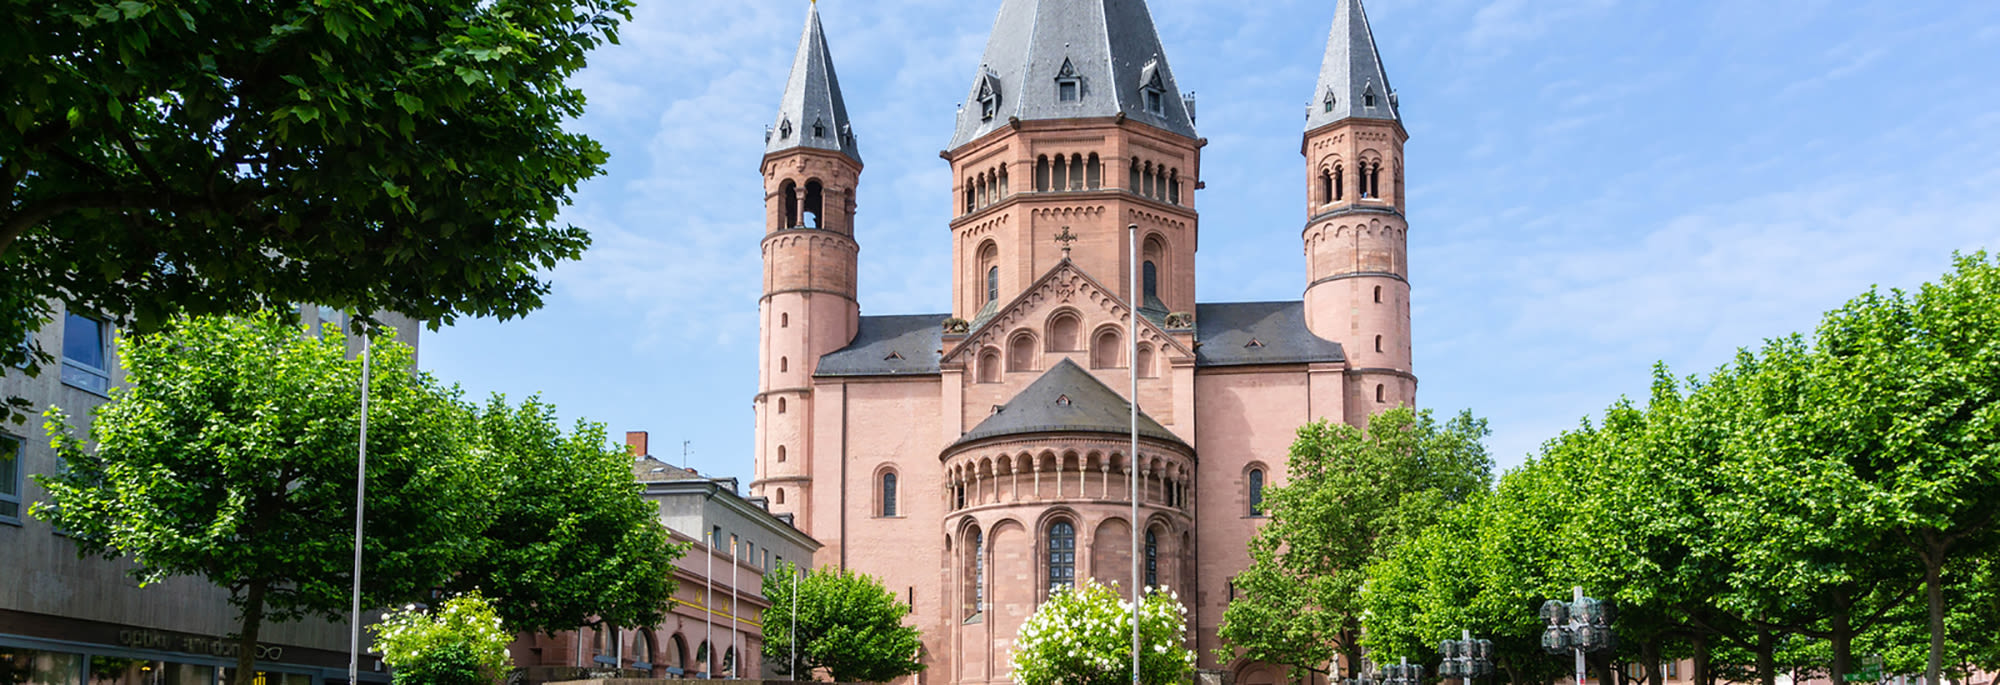 mainz cathedral with trees